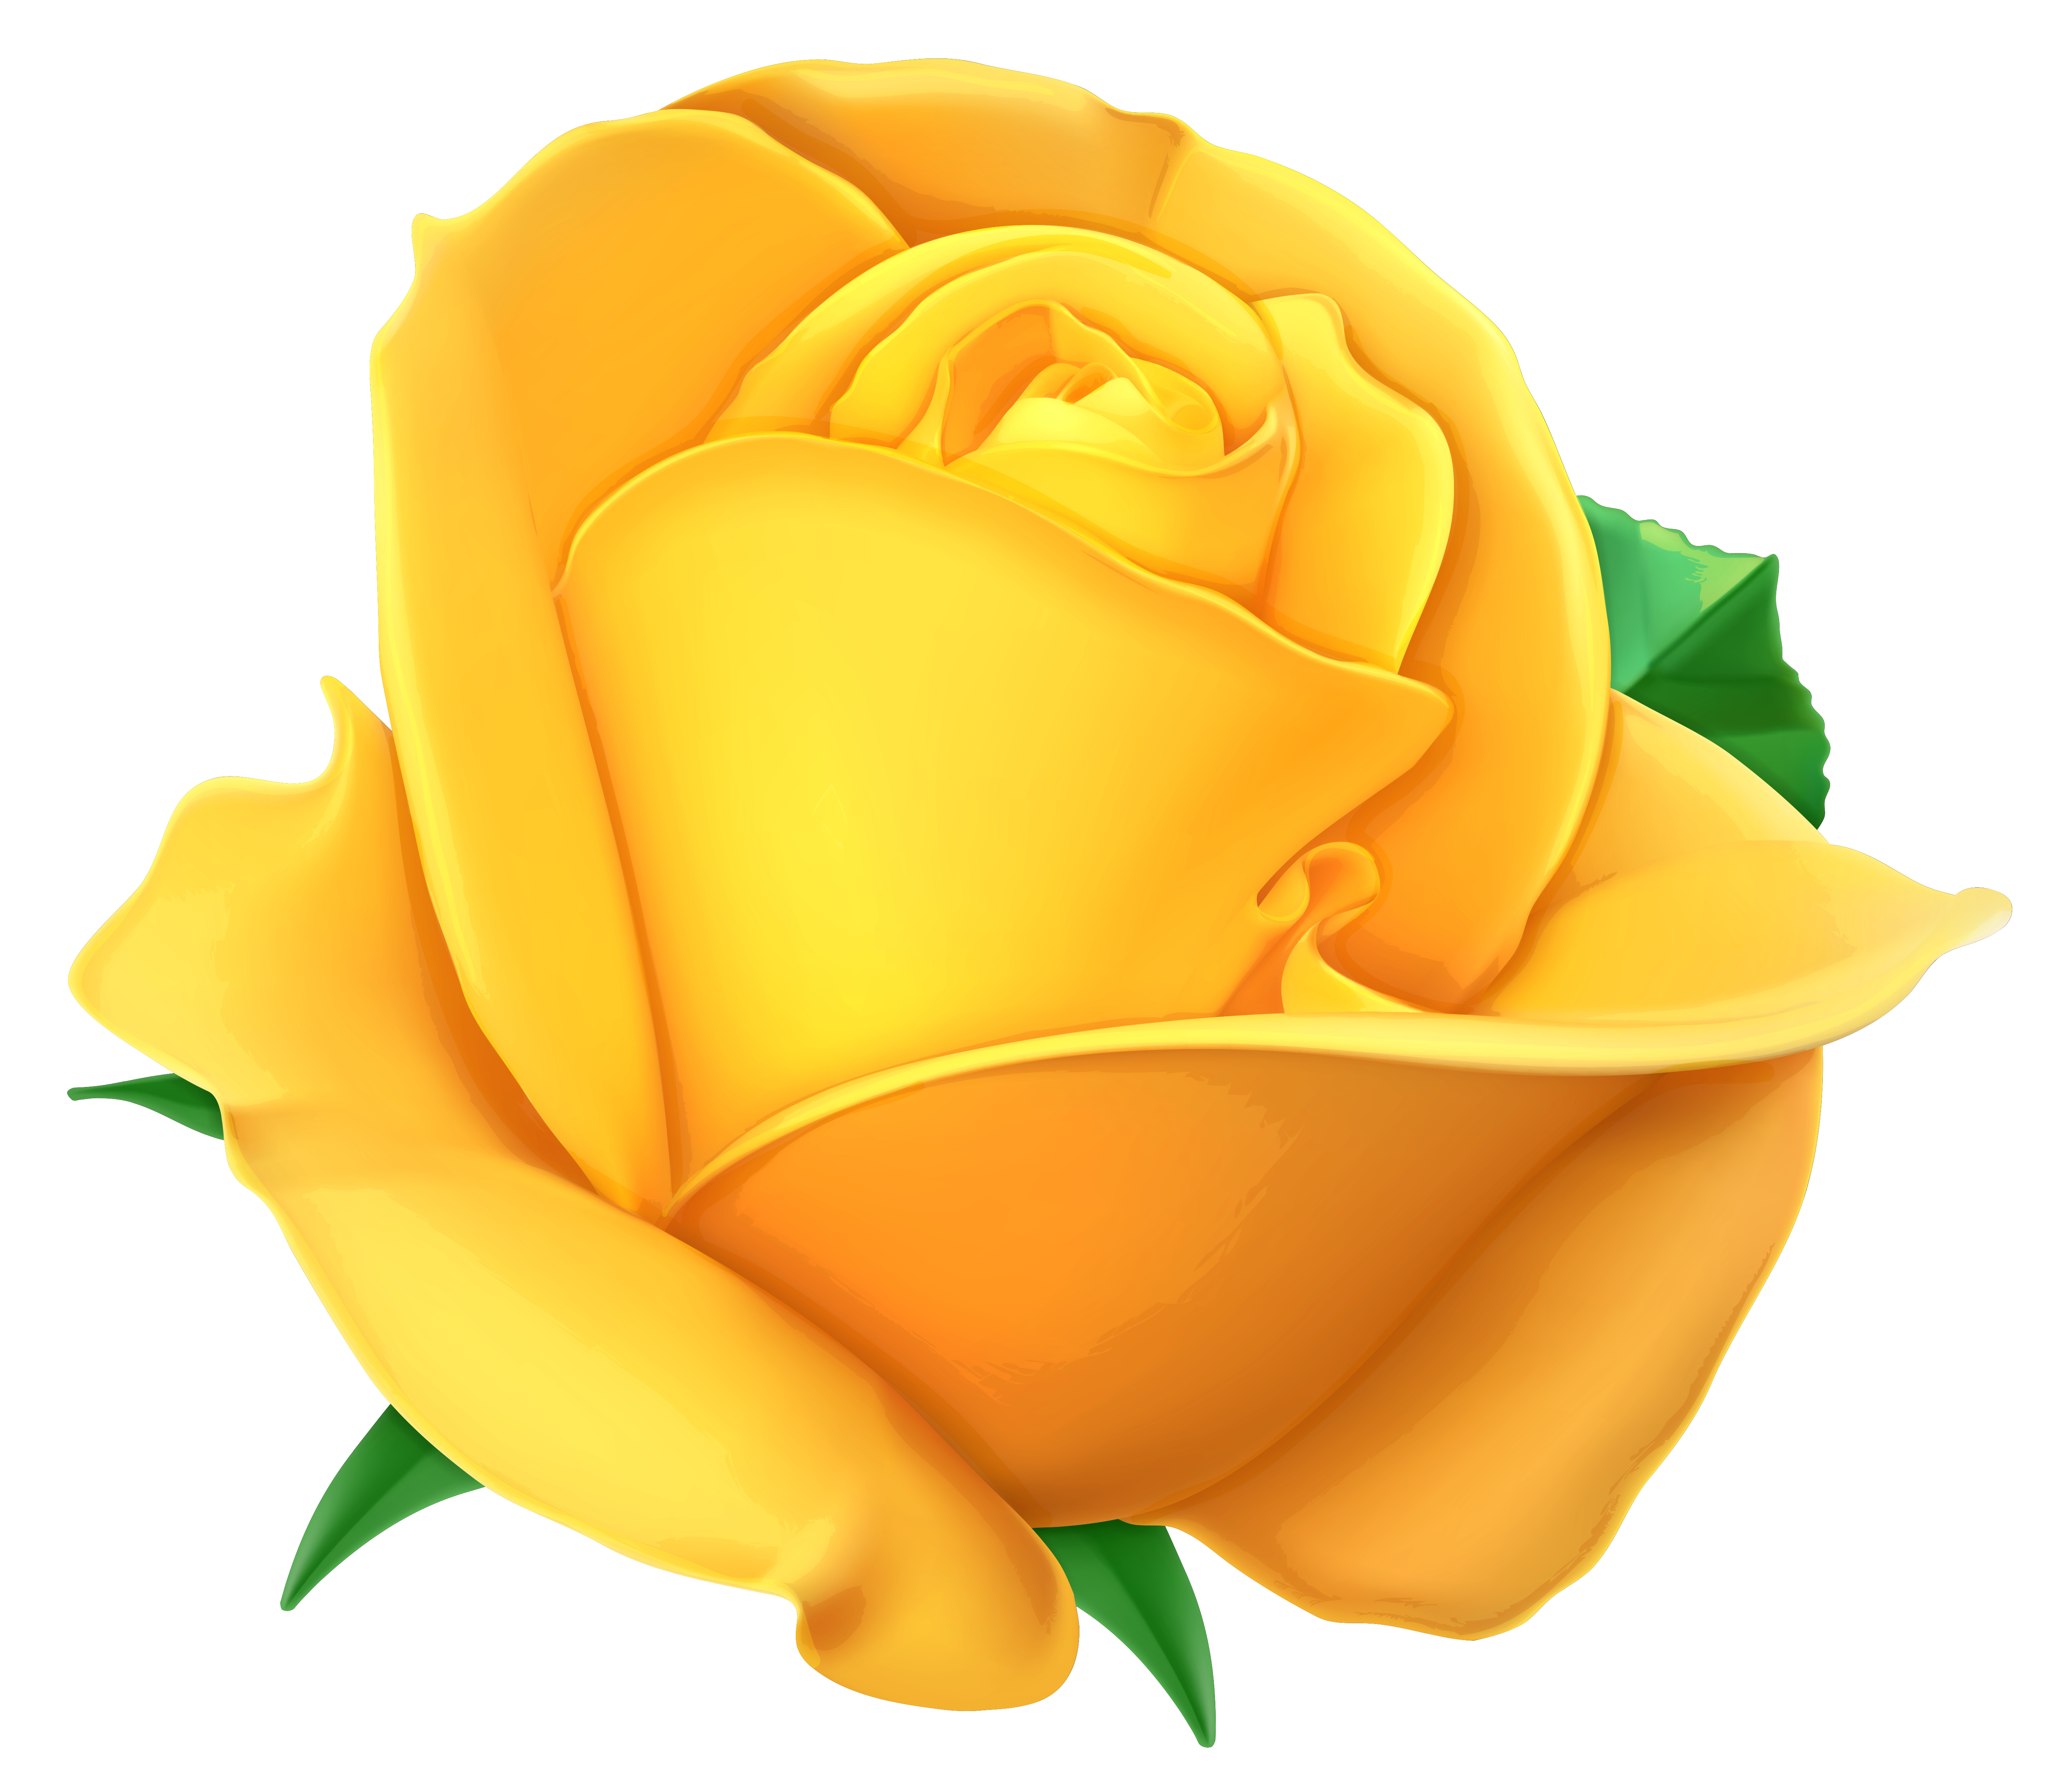 Rose clipart yellow rose. Free photo pretty plants